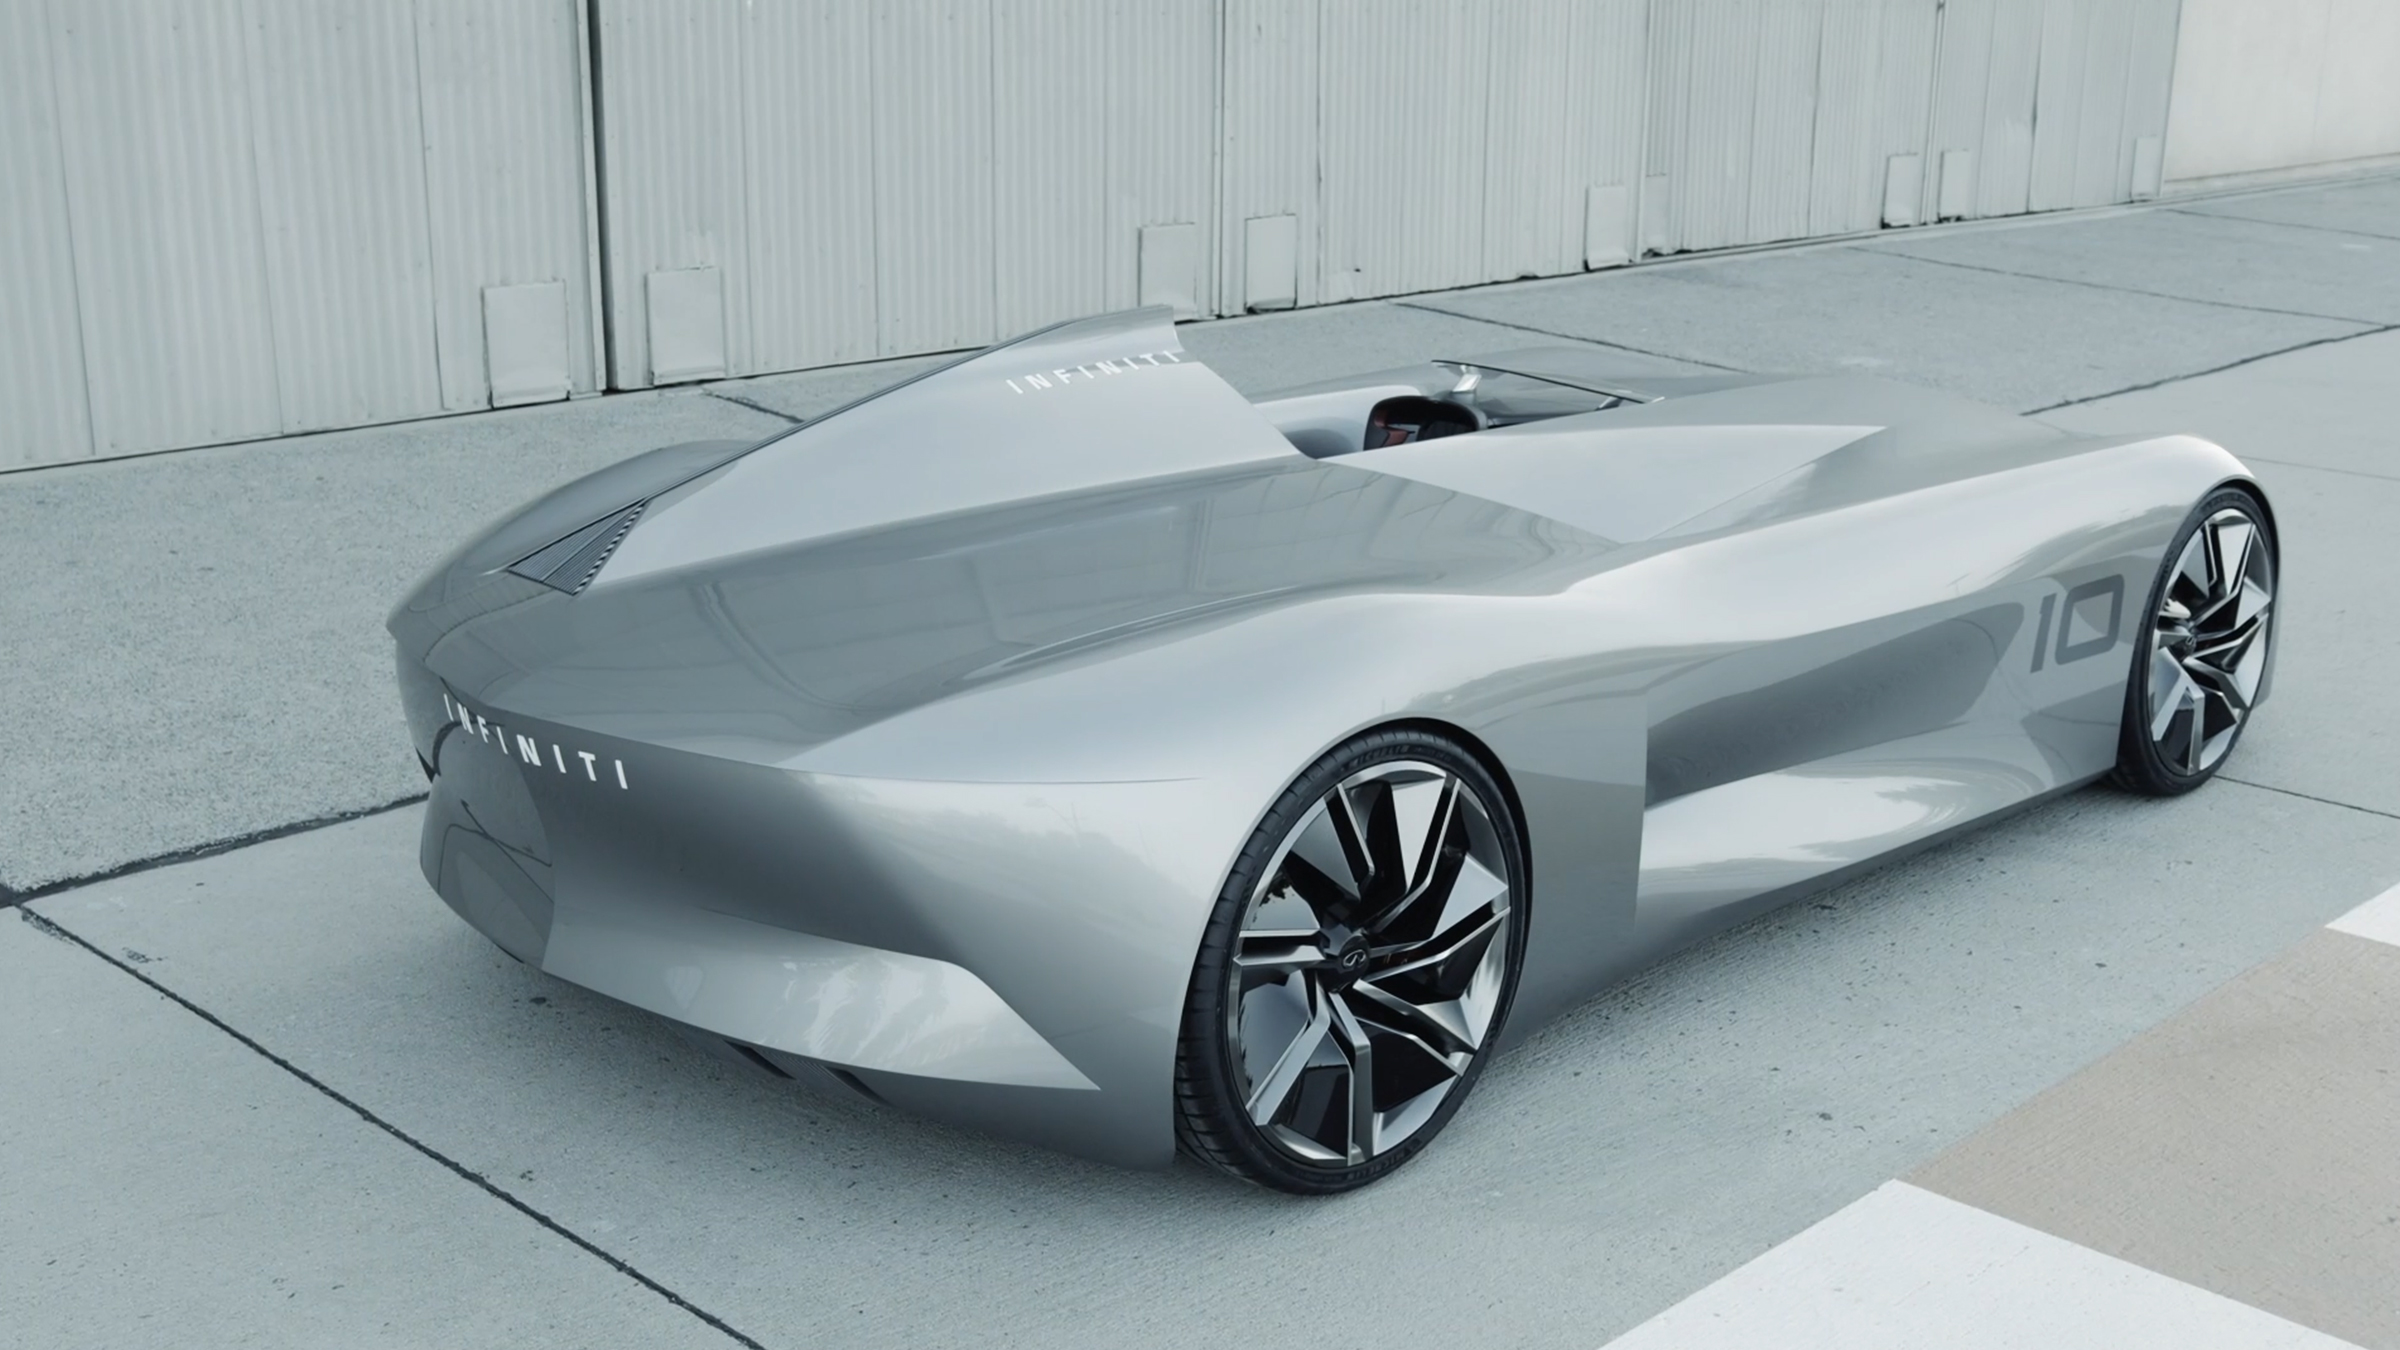 INFINITI Prototype 10 Concept Car Inspires All Future Electrified INFINITI Car Models